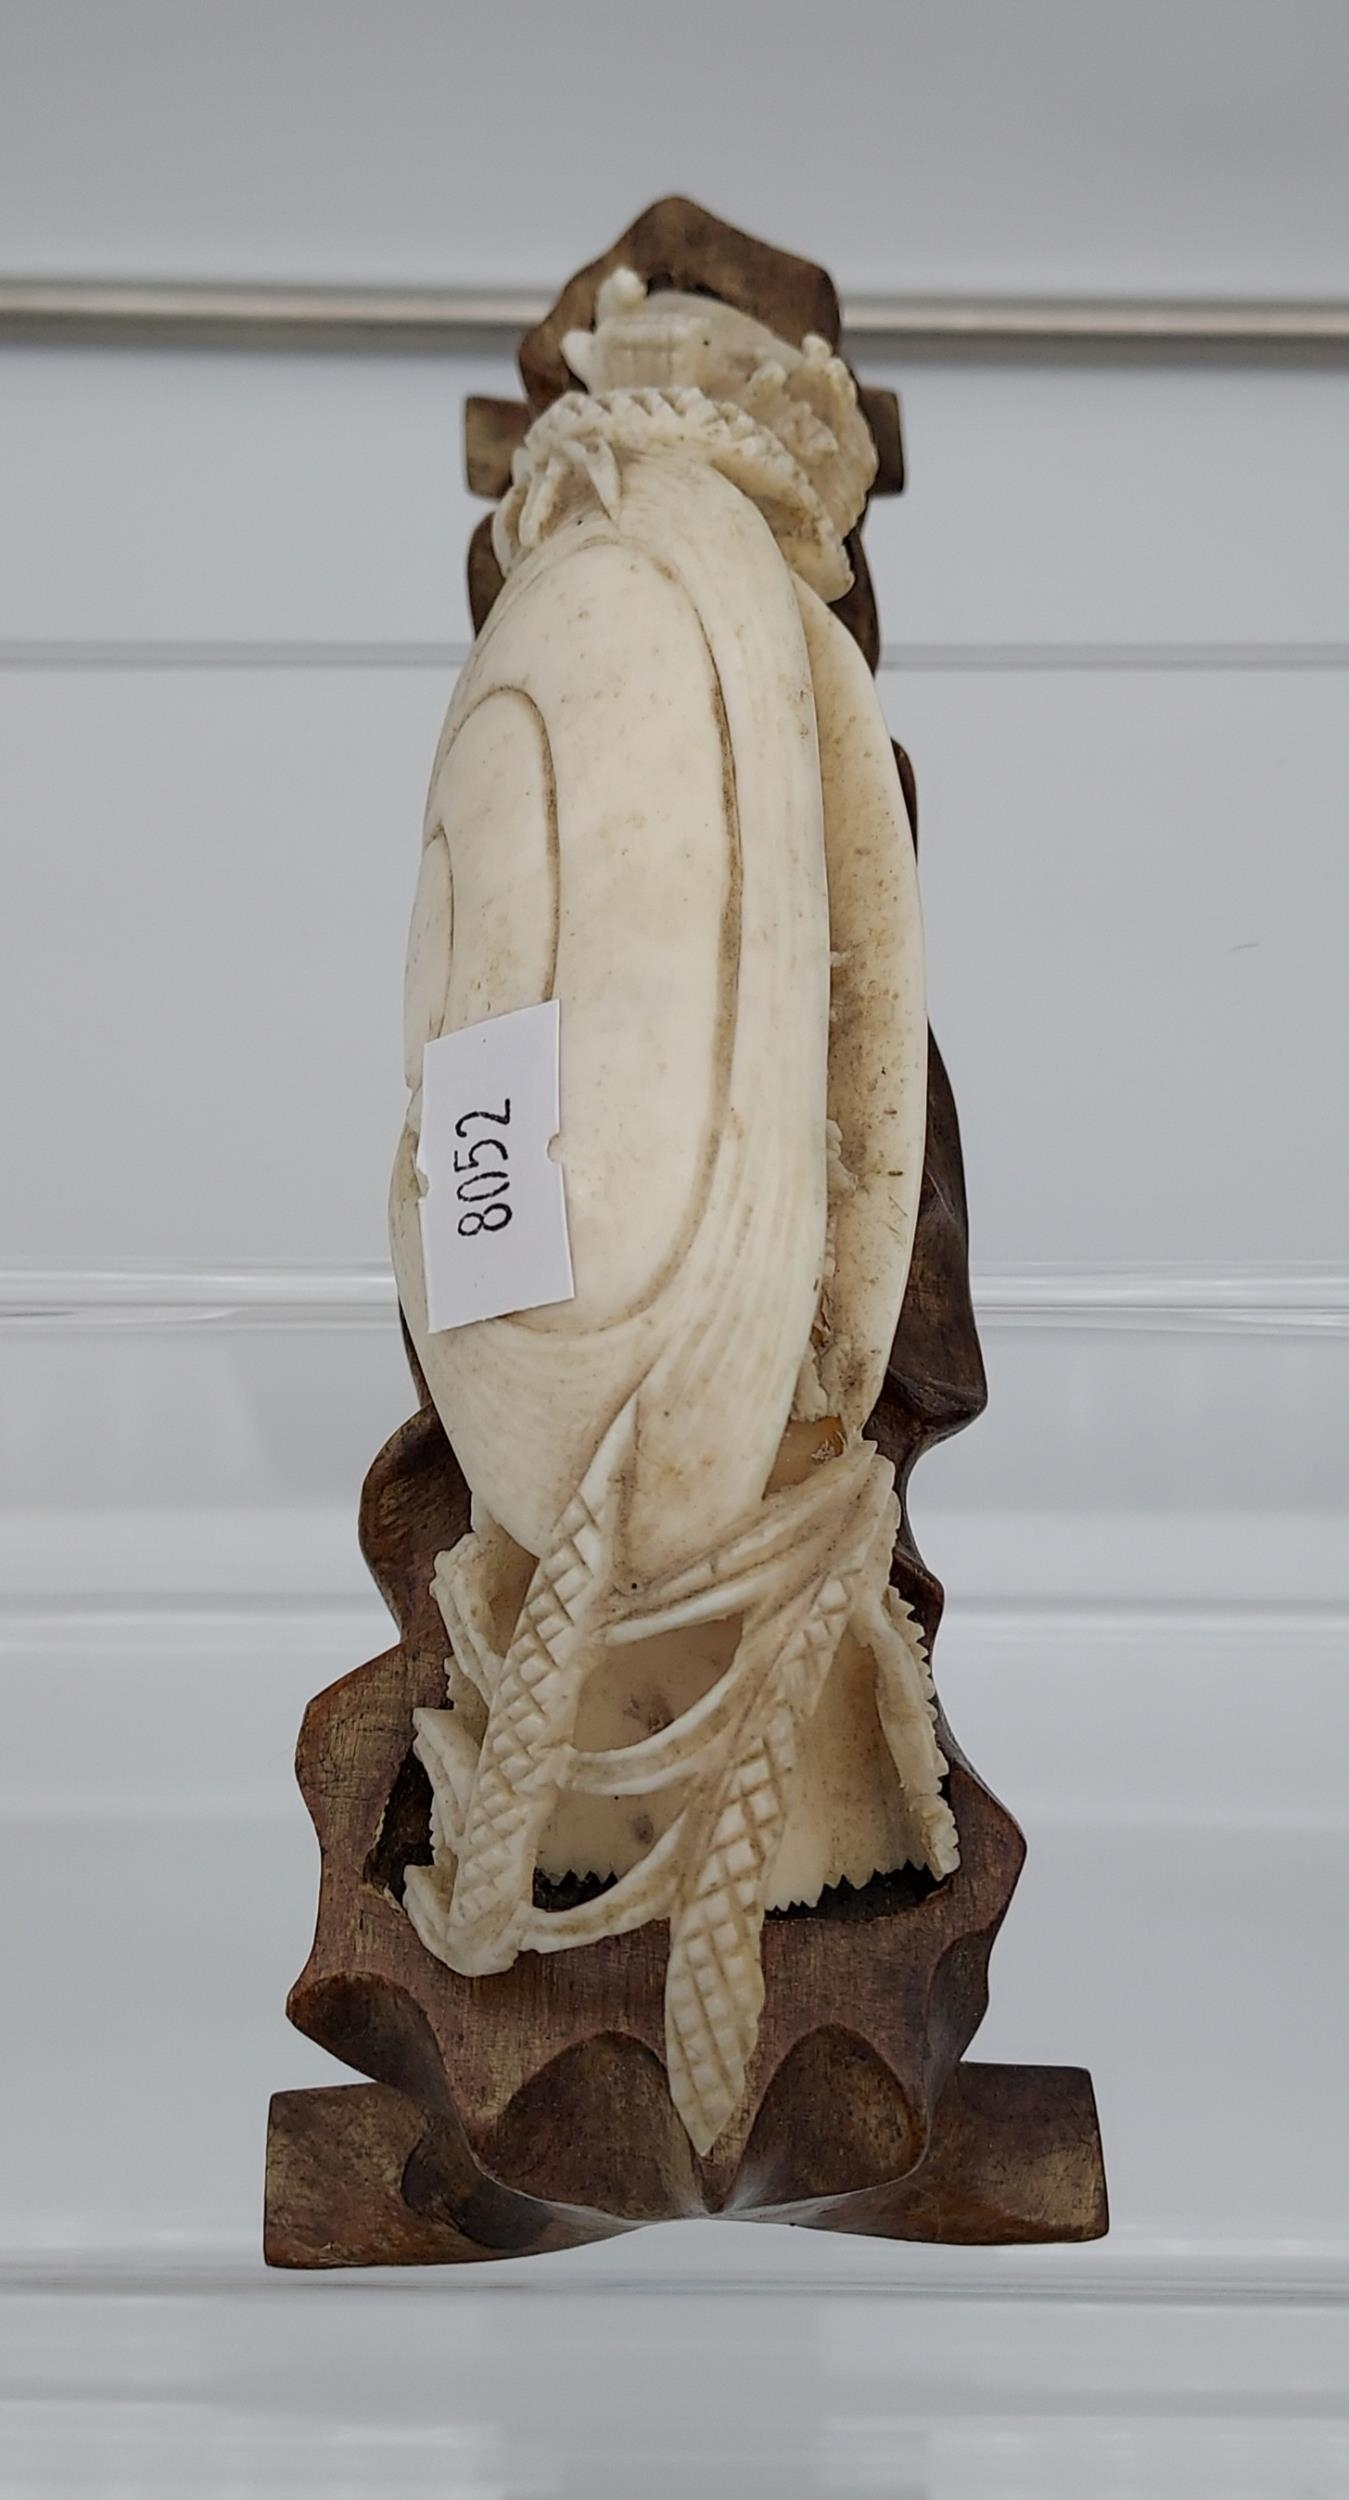 Antique Chinese hand carved ivory sculpture sat upon a carved wooden stand. [18cm in length] - Image 2 of 3